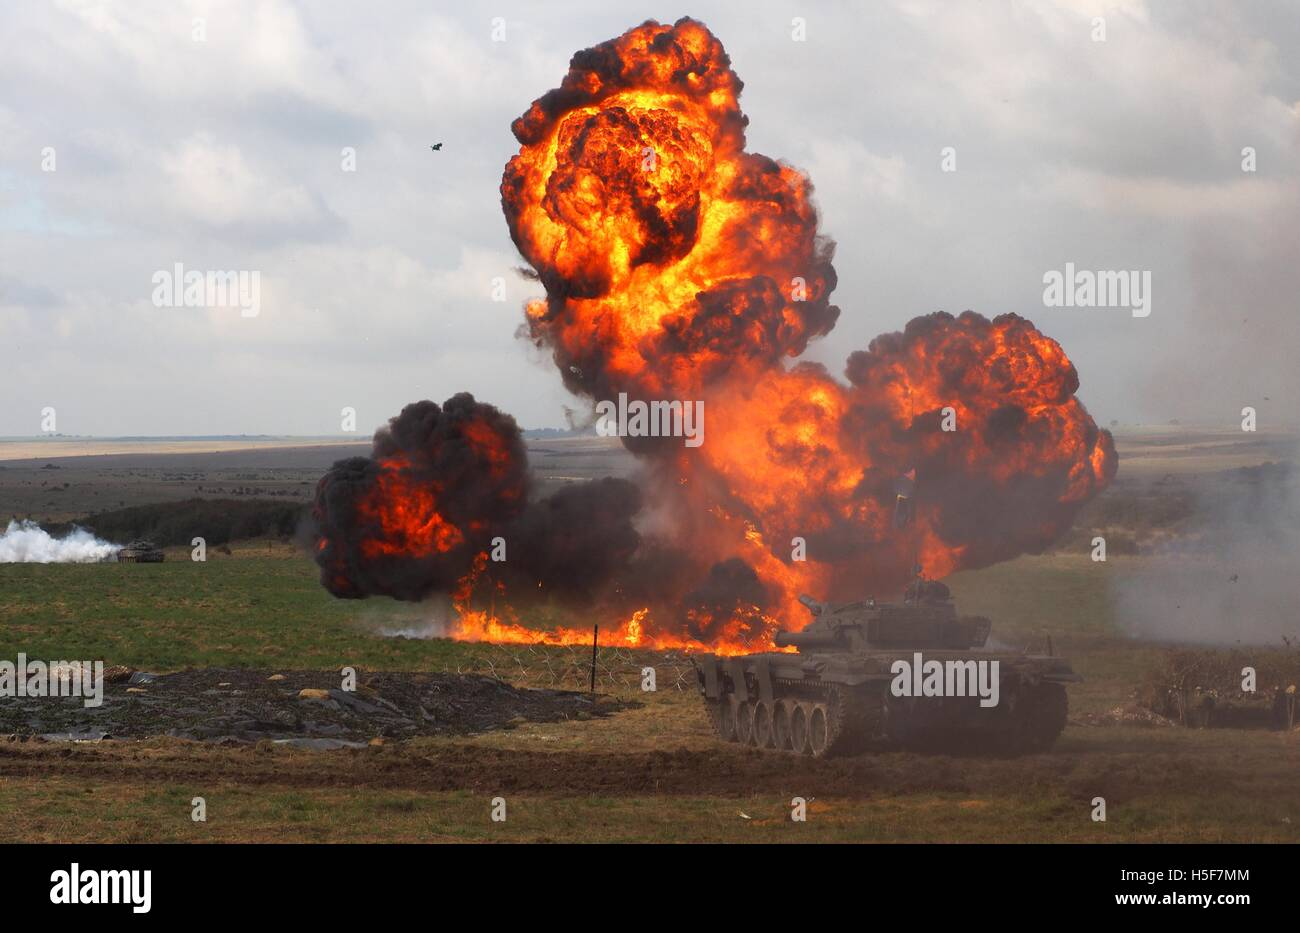 Salisbury, Wiltshire, UK. 20th October, 2016. British Army calls in 'Hollywood' special effects company - Stock Image